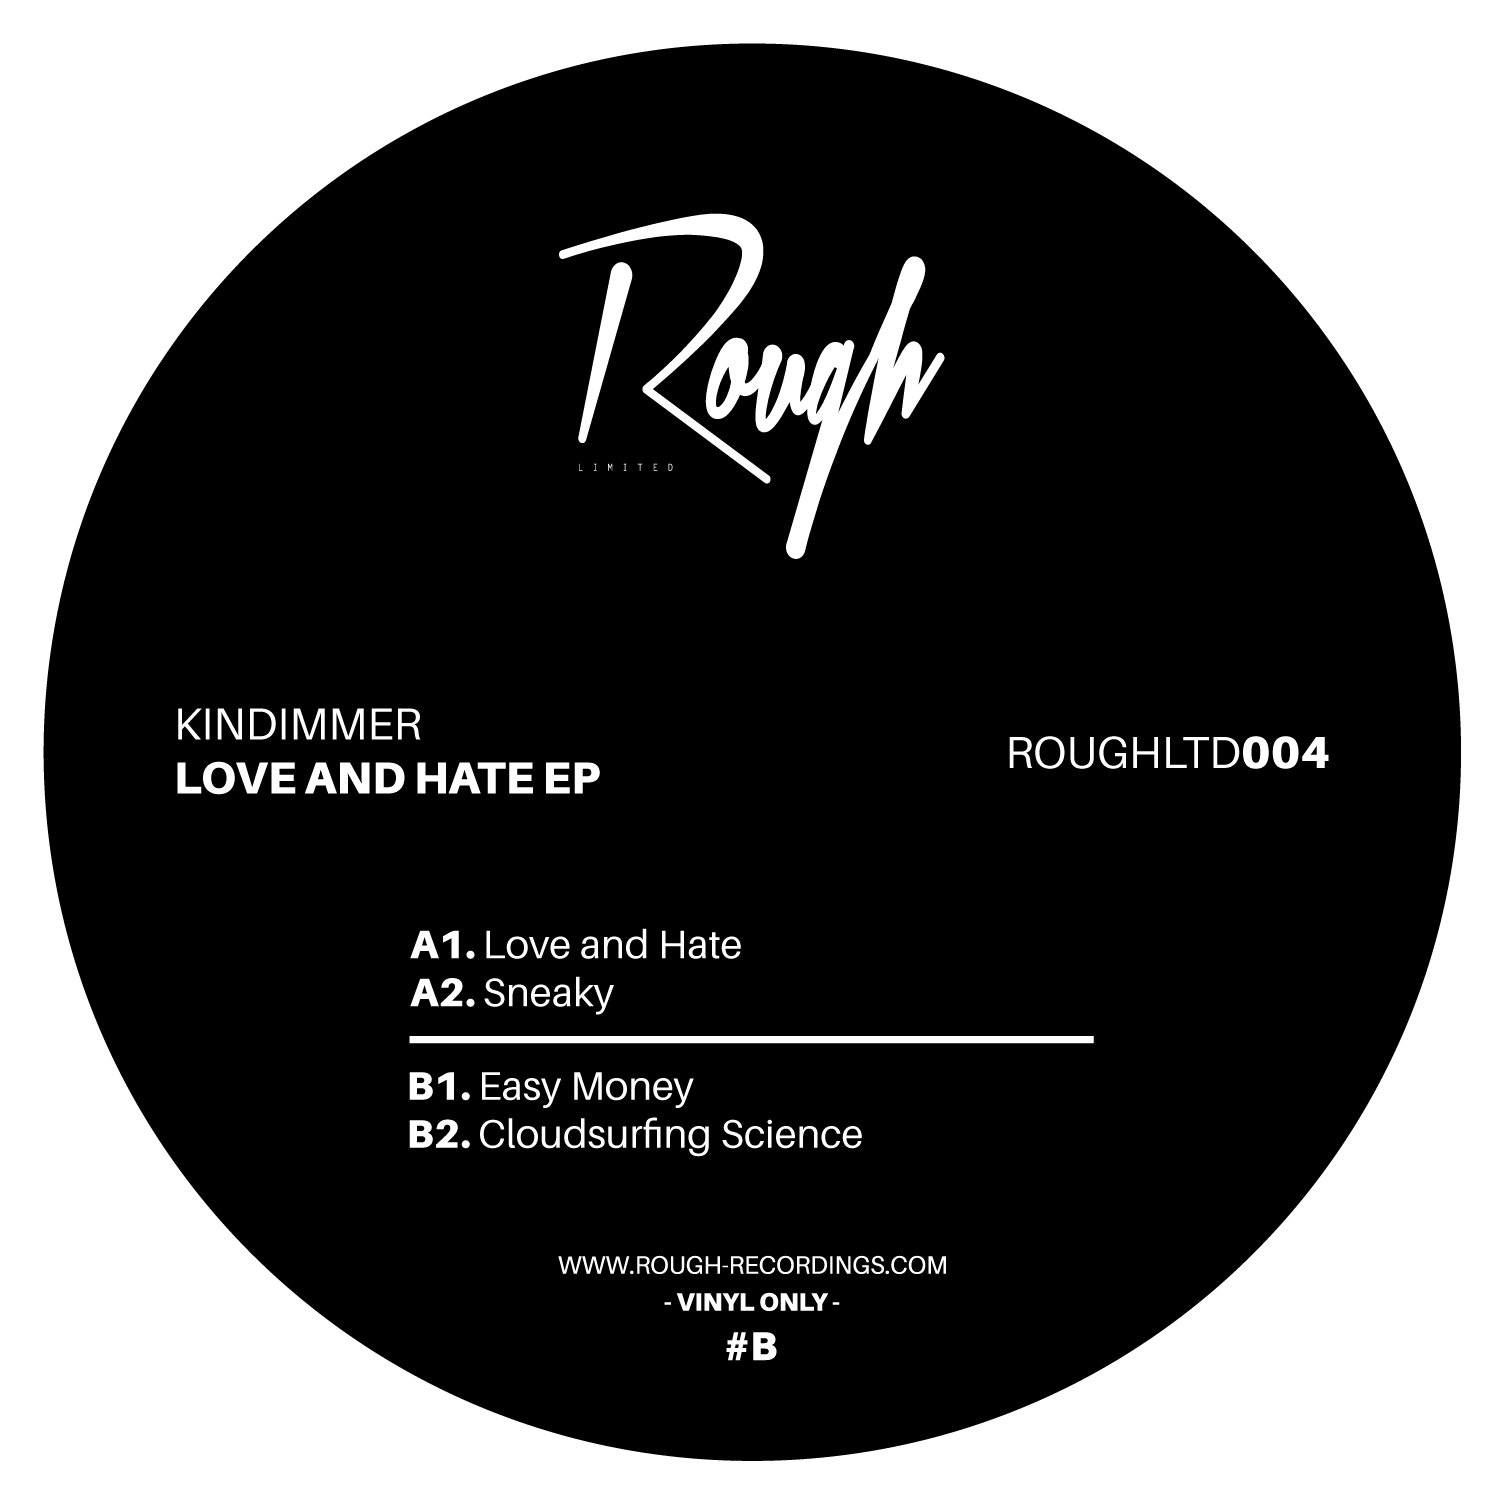 https://www.rough-recordings.com/wp-content/uploads/ROUGHLTD004_B.jpg